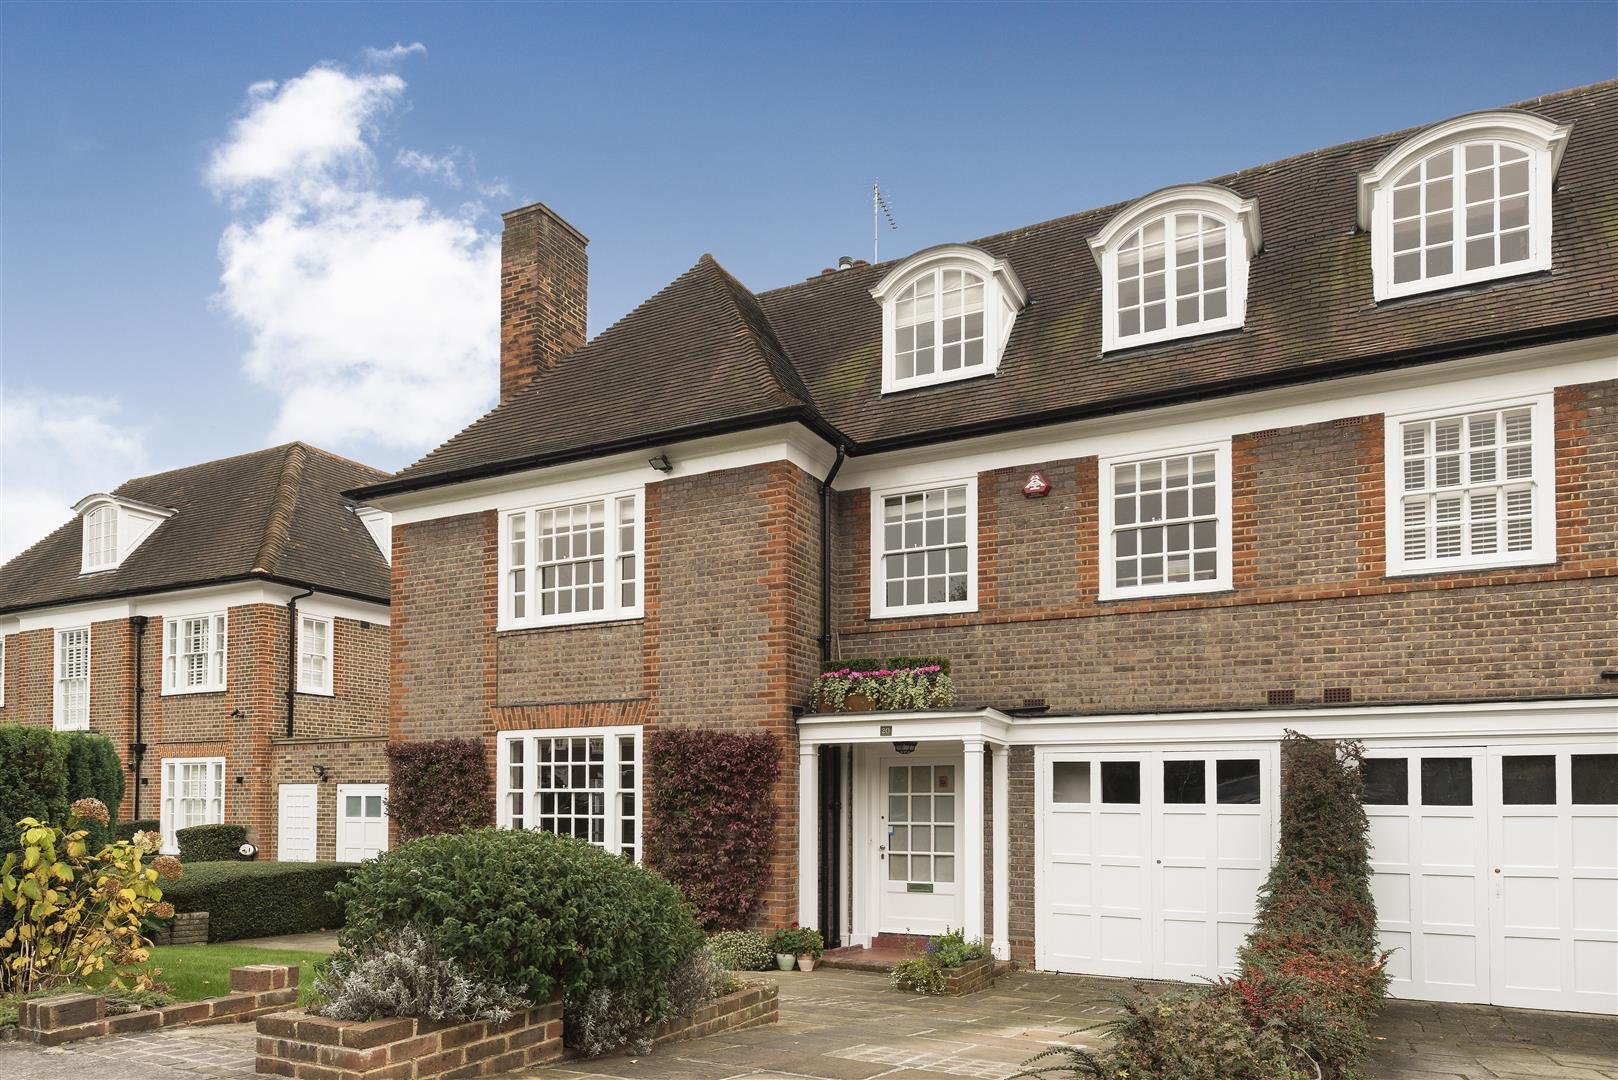 6 Bedrooms House for sale in South Square, Hampstead Garden Suburb, NW11